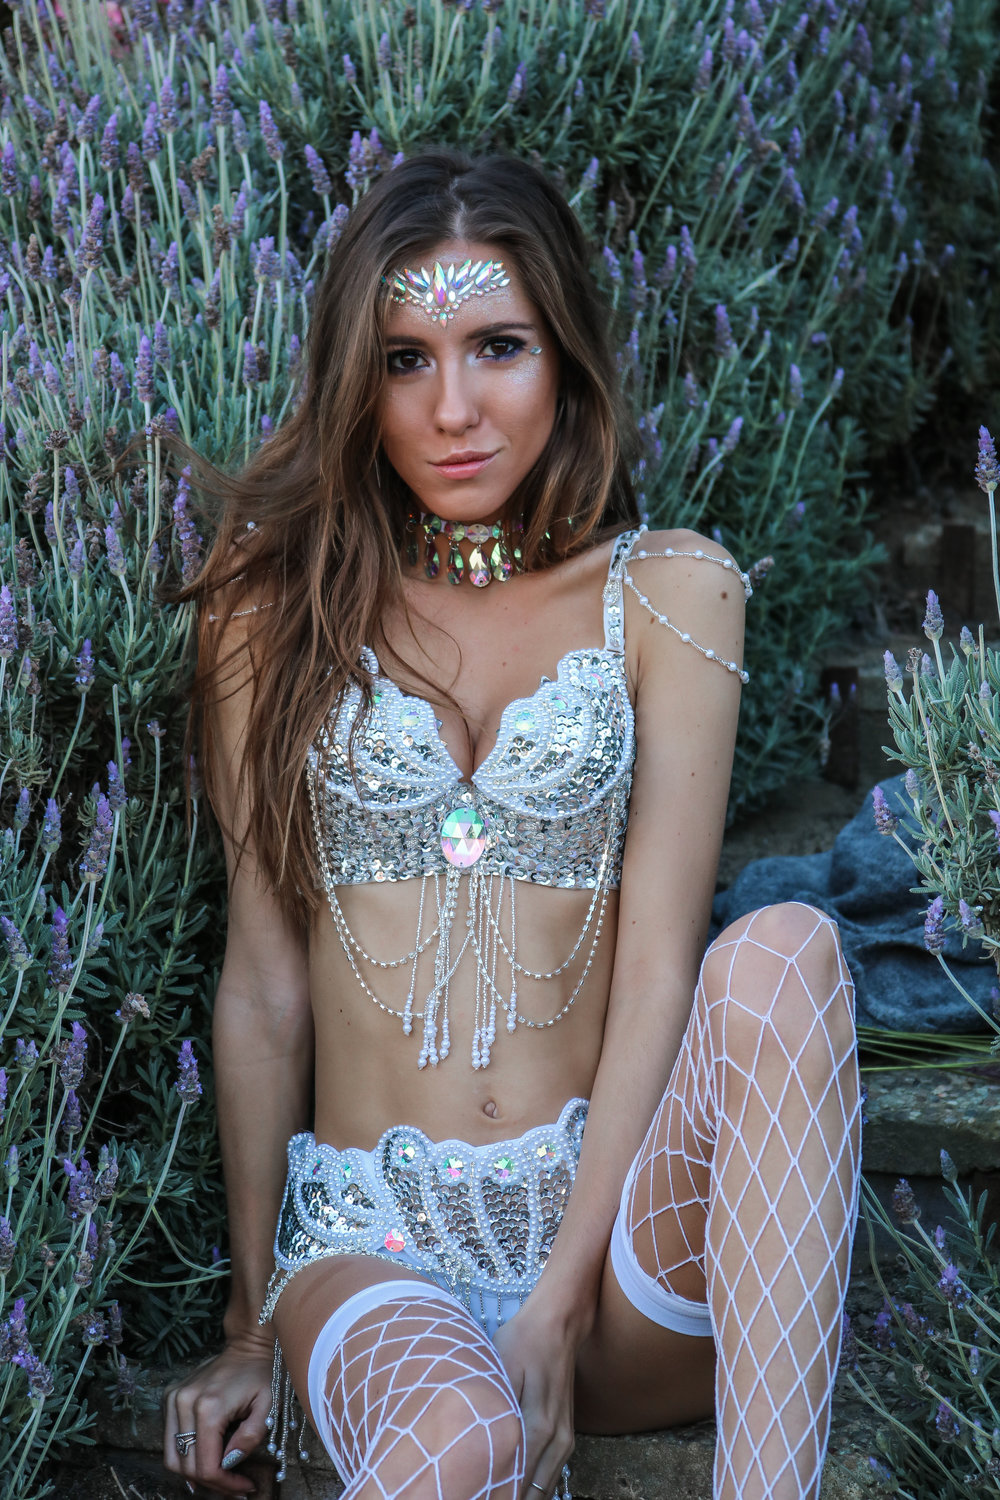 The Hungarian Brunette Sparkle overload, carnival inspired silver festival outfit. Rave bra and belly dancing belt